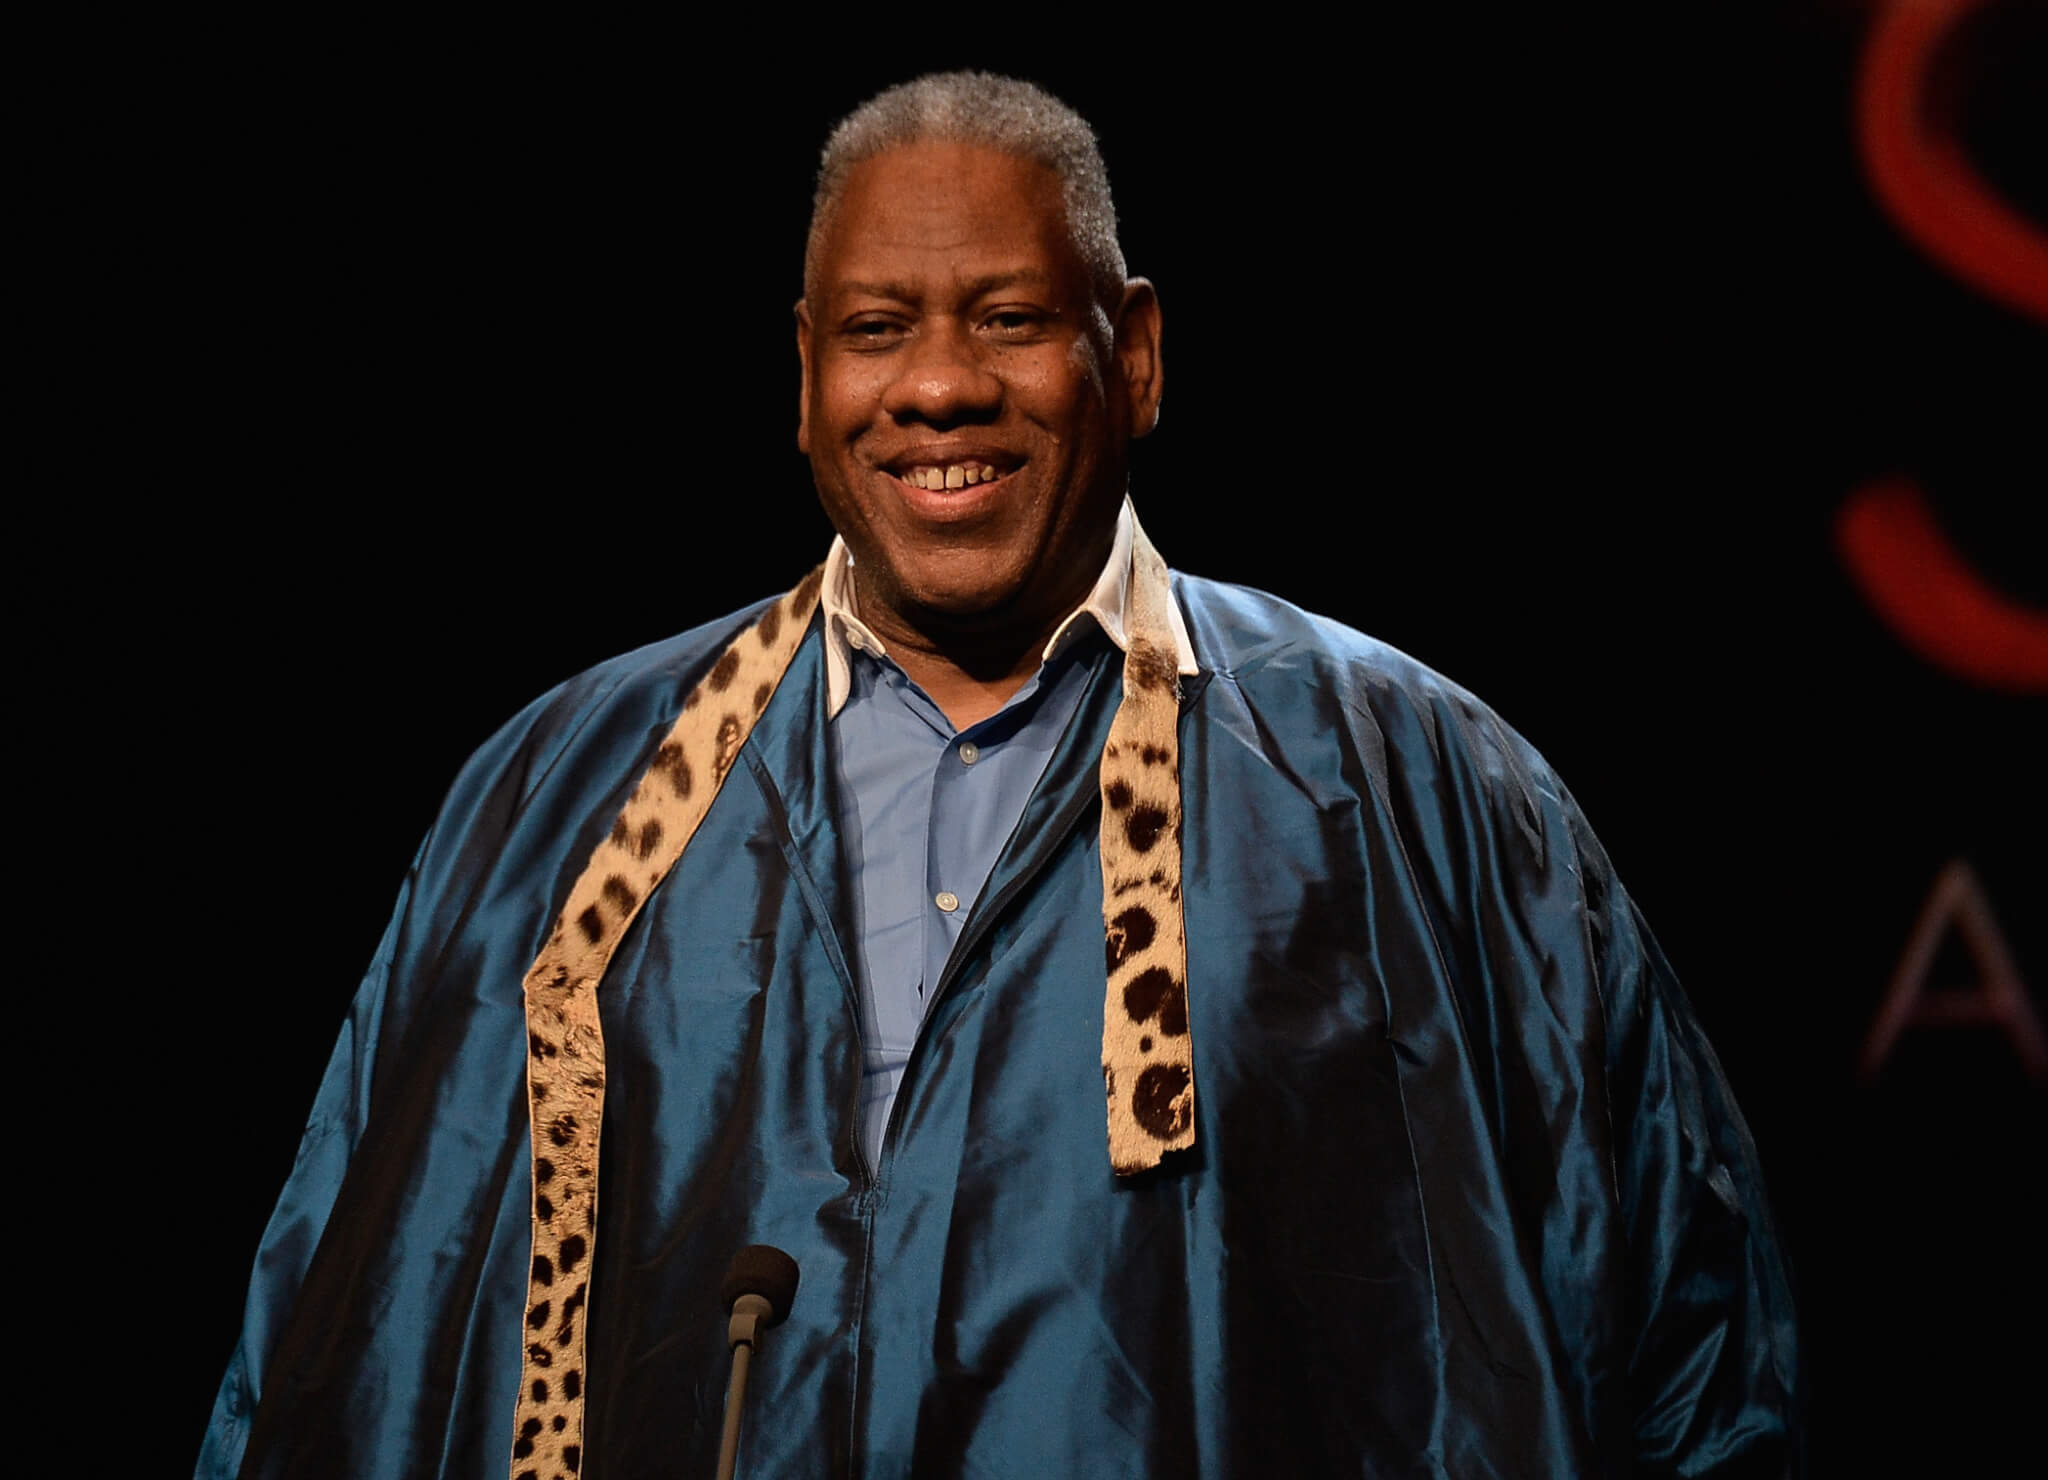 NEW YORK, NY - SEPTEMBER 04: Andre Leon Talley speaks onstage at the 10th annual Style Awards during Mercedes-Benz Fashion Week Spring 2014 at Lincoln Center on September 4, 2013 in New York City. (Photo by Frazer Harrison/Getty Images for Mercedes-Benz Fashion Week)